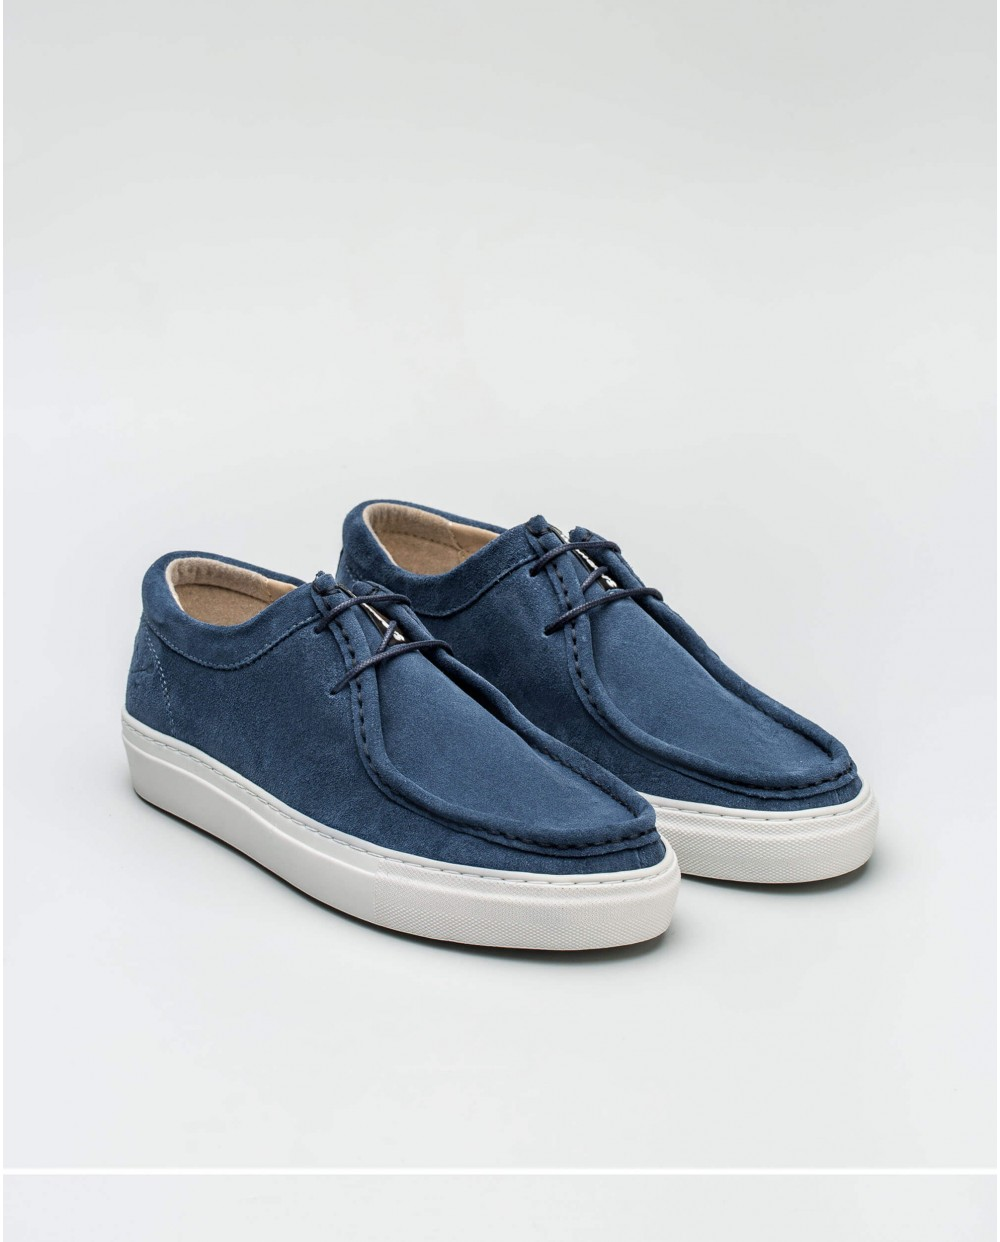 Wonders-Sneakers-Plimsoll style sport shoes